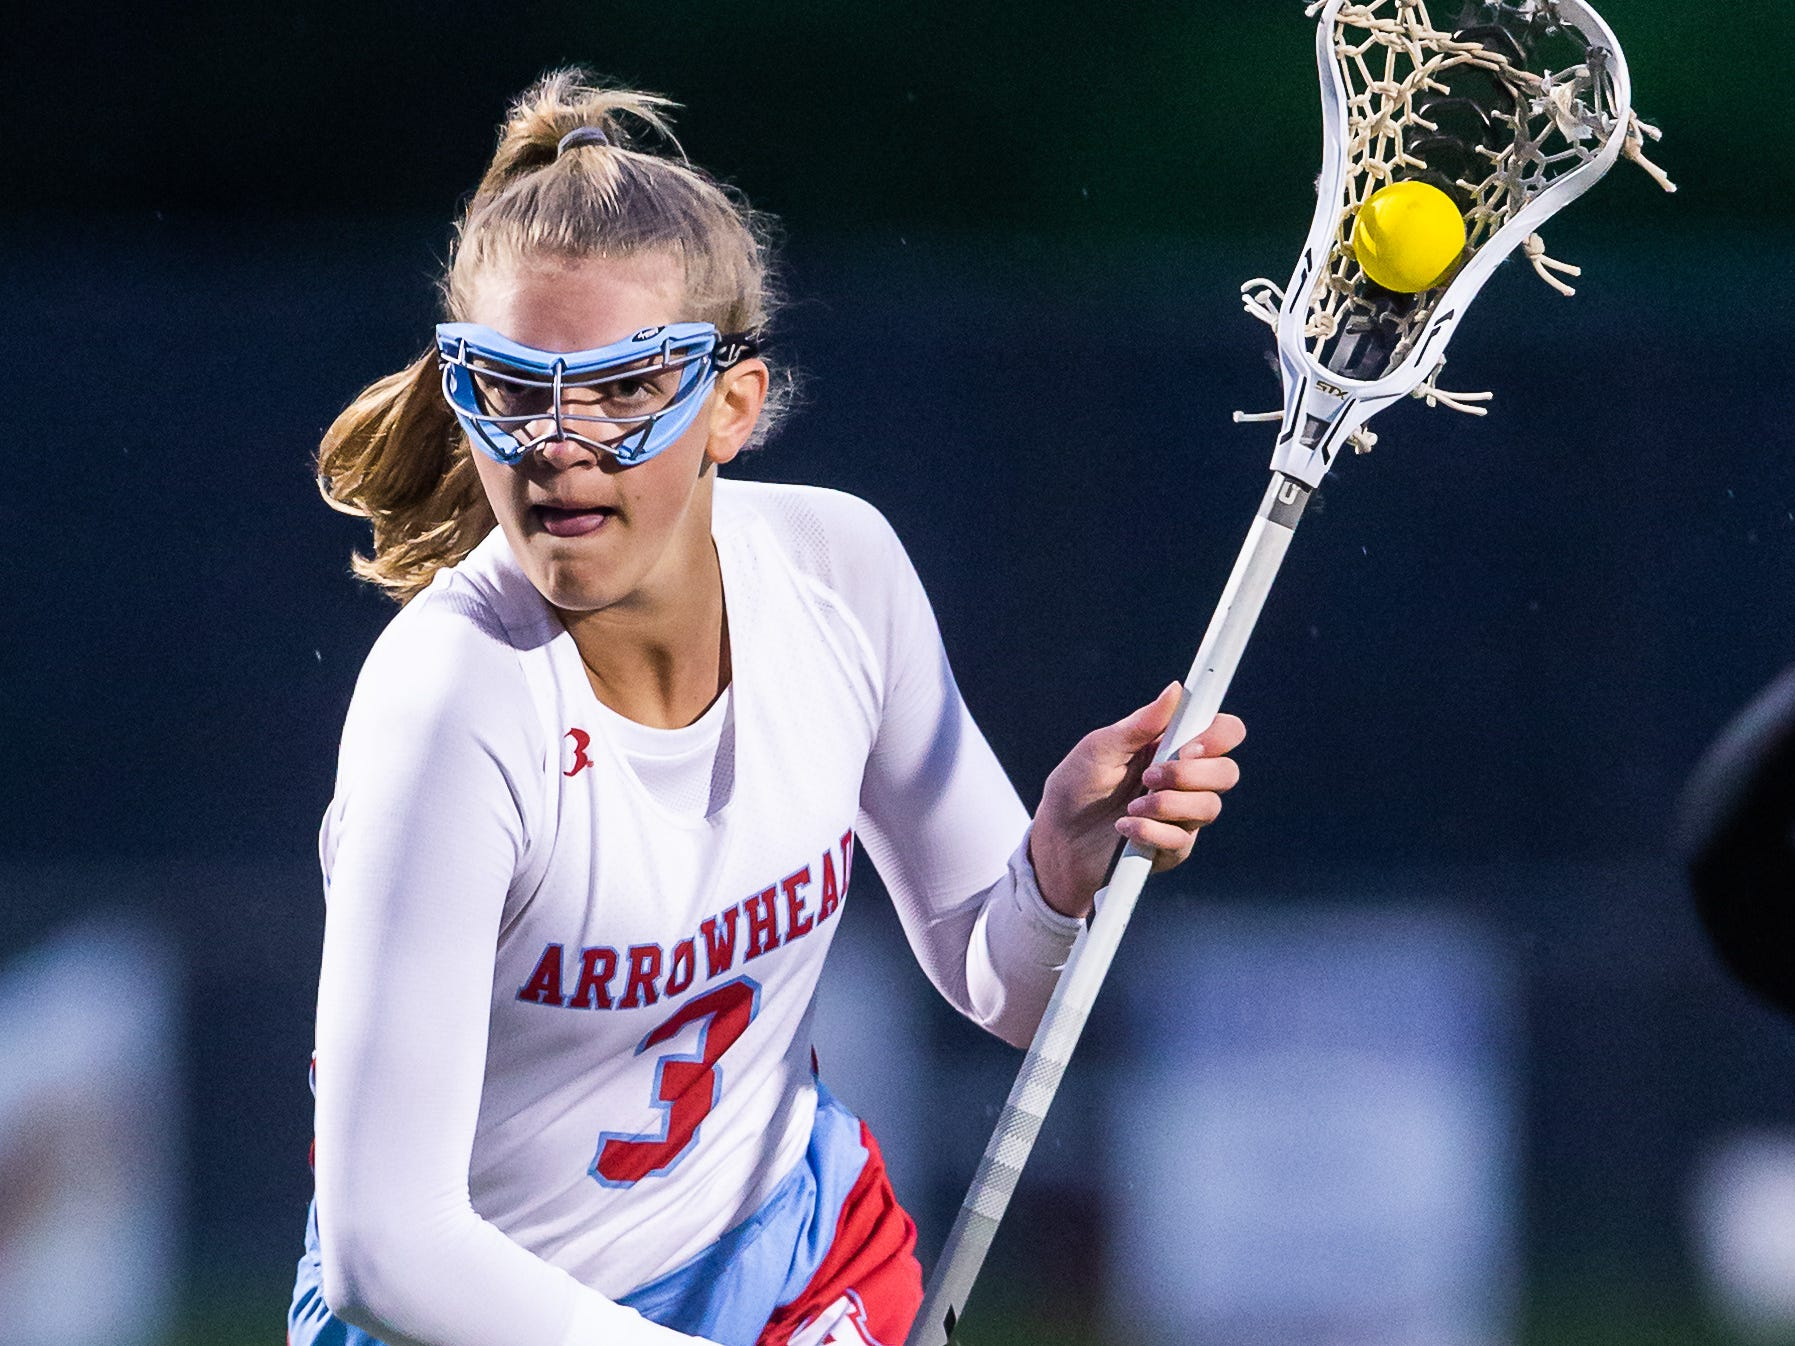 Arrowhead White's Alena Lippold (3) races in for a shot on goal during the game at home against Divine Savior Holy Angels on Friday, May 17, 2019.